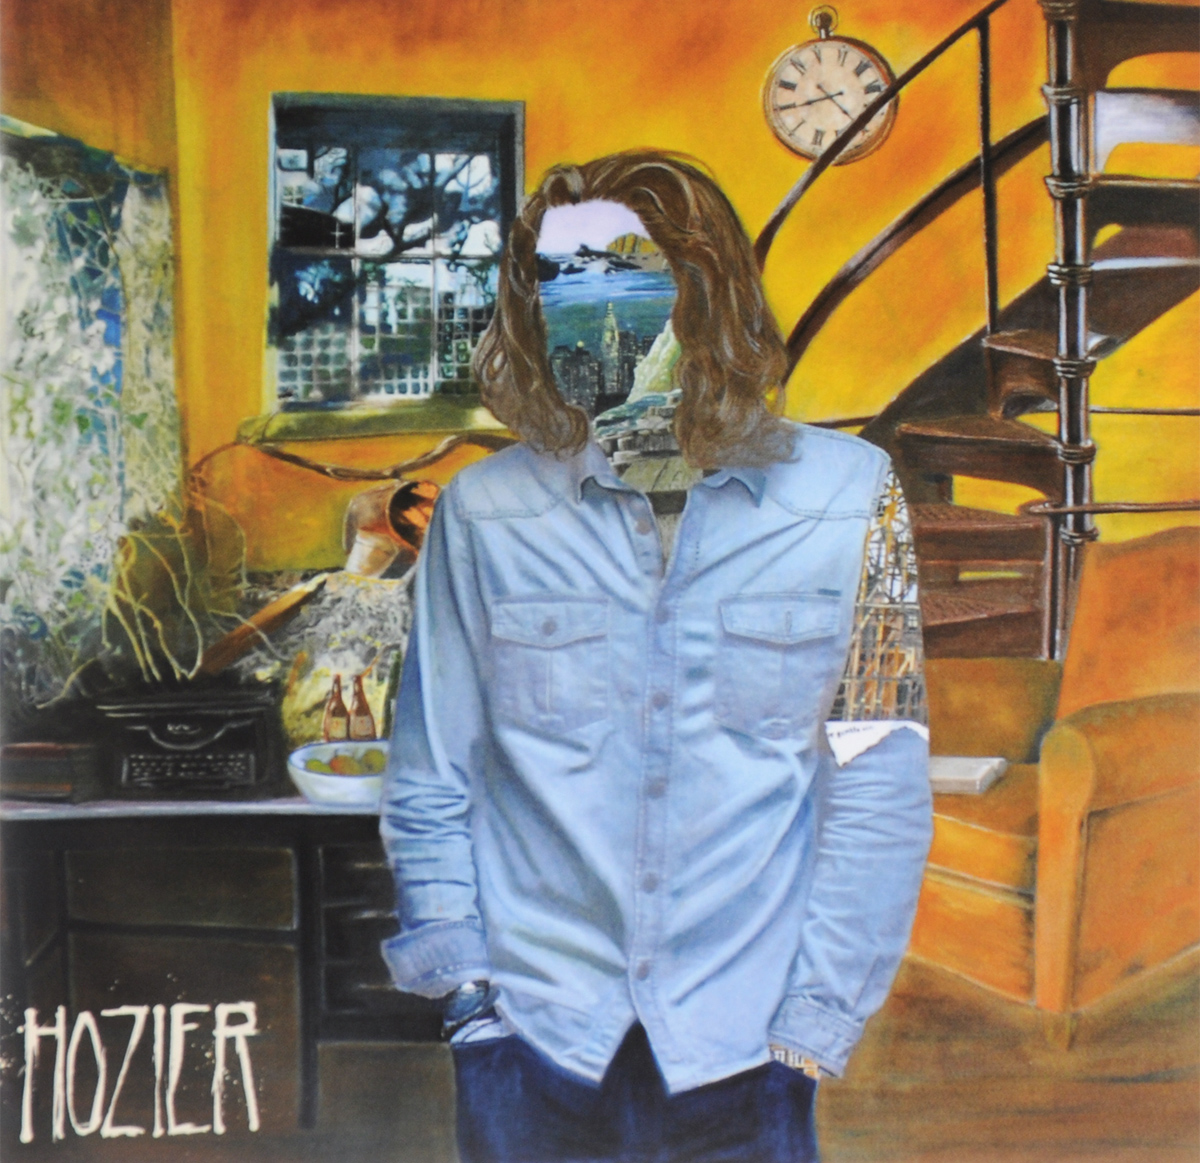 Hozier Hozier. Hozier. Special Edition (2 CD) touchstone teacher s edition 4 with audio cd